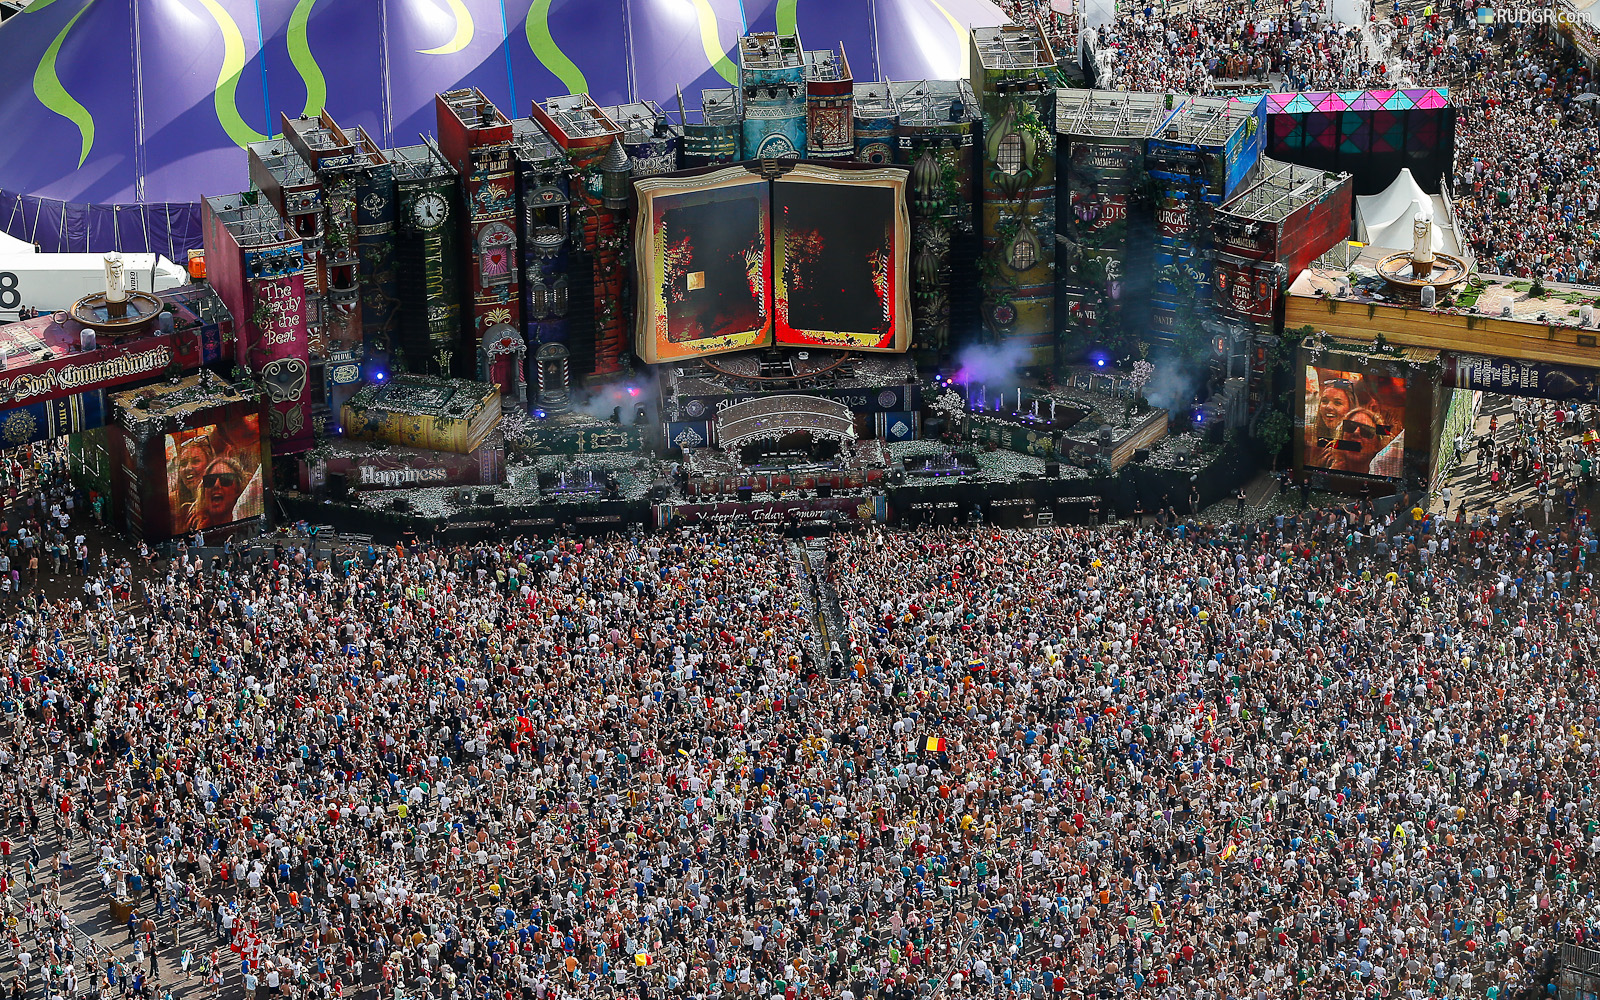 10 Things You Didn't Know About the TomorrowLand Festival ... Tomorrowland 2012 Wallpaper